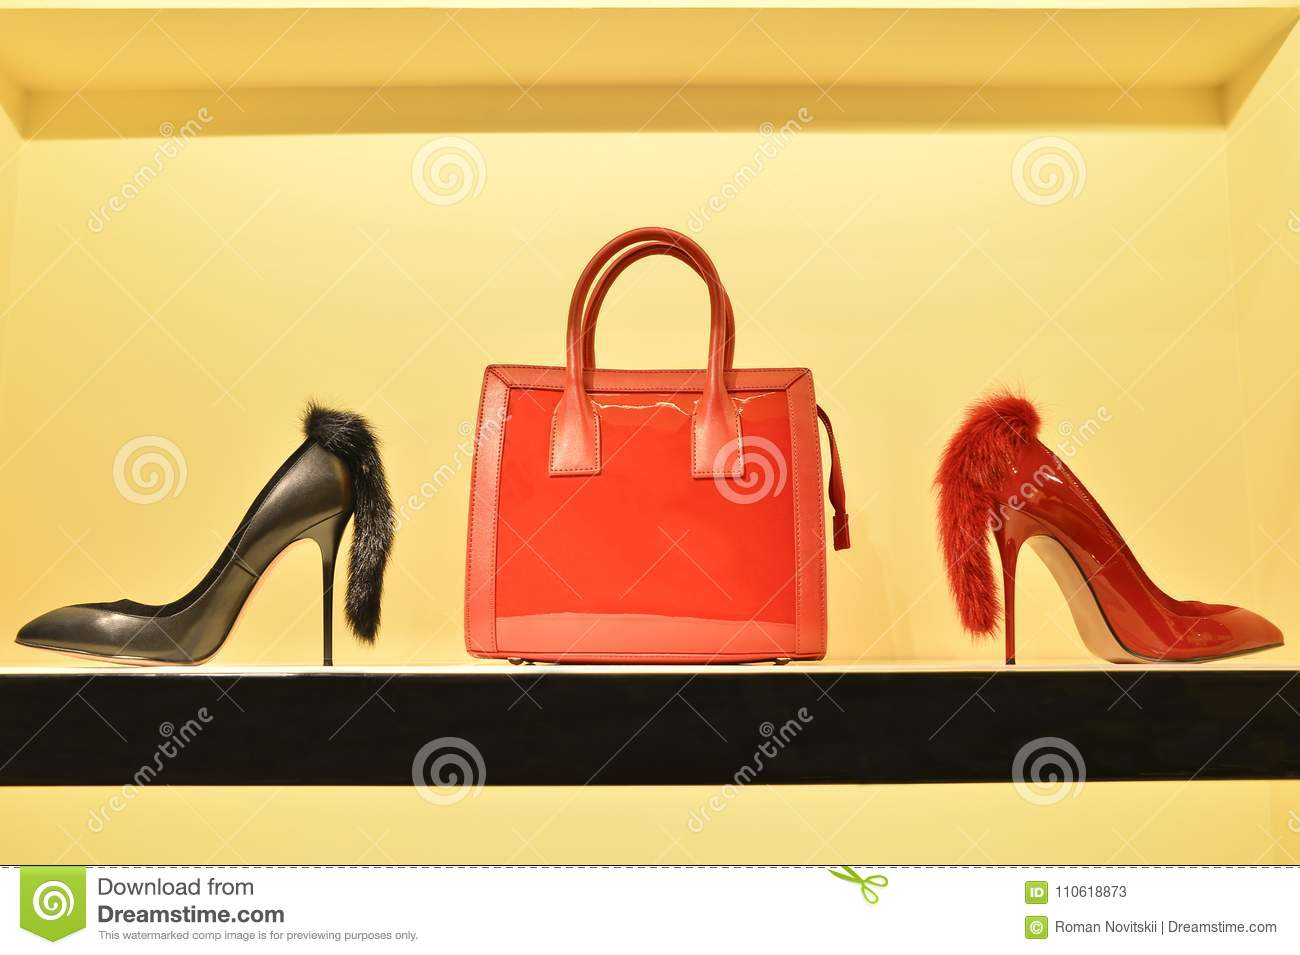 423a8d6042b Red Women`s Bag In A Combination Of Red And Black Stilettos. The ...